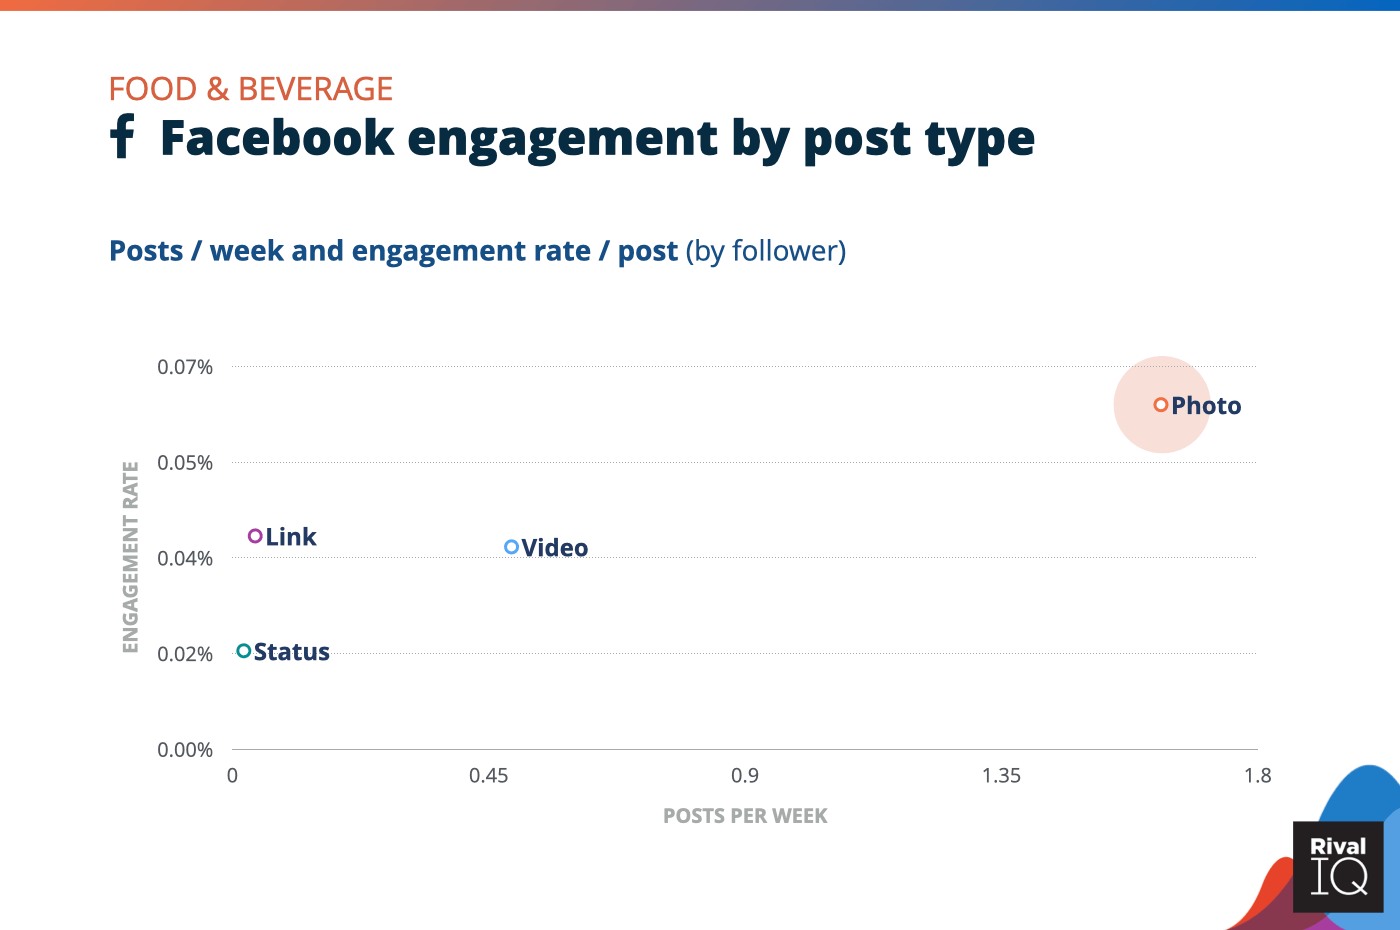 Chart of Facebook posts per week and engagement rate by post type, Food & Beverage